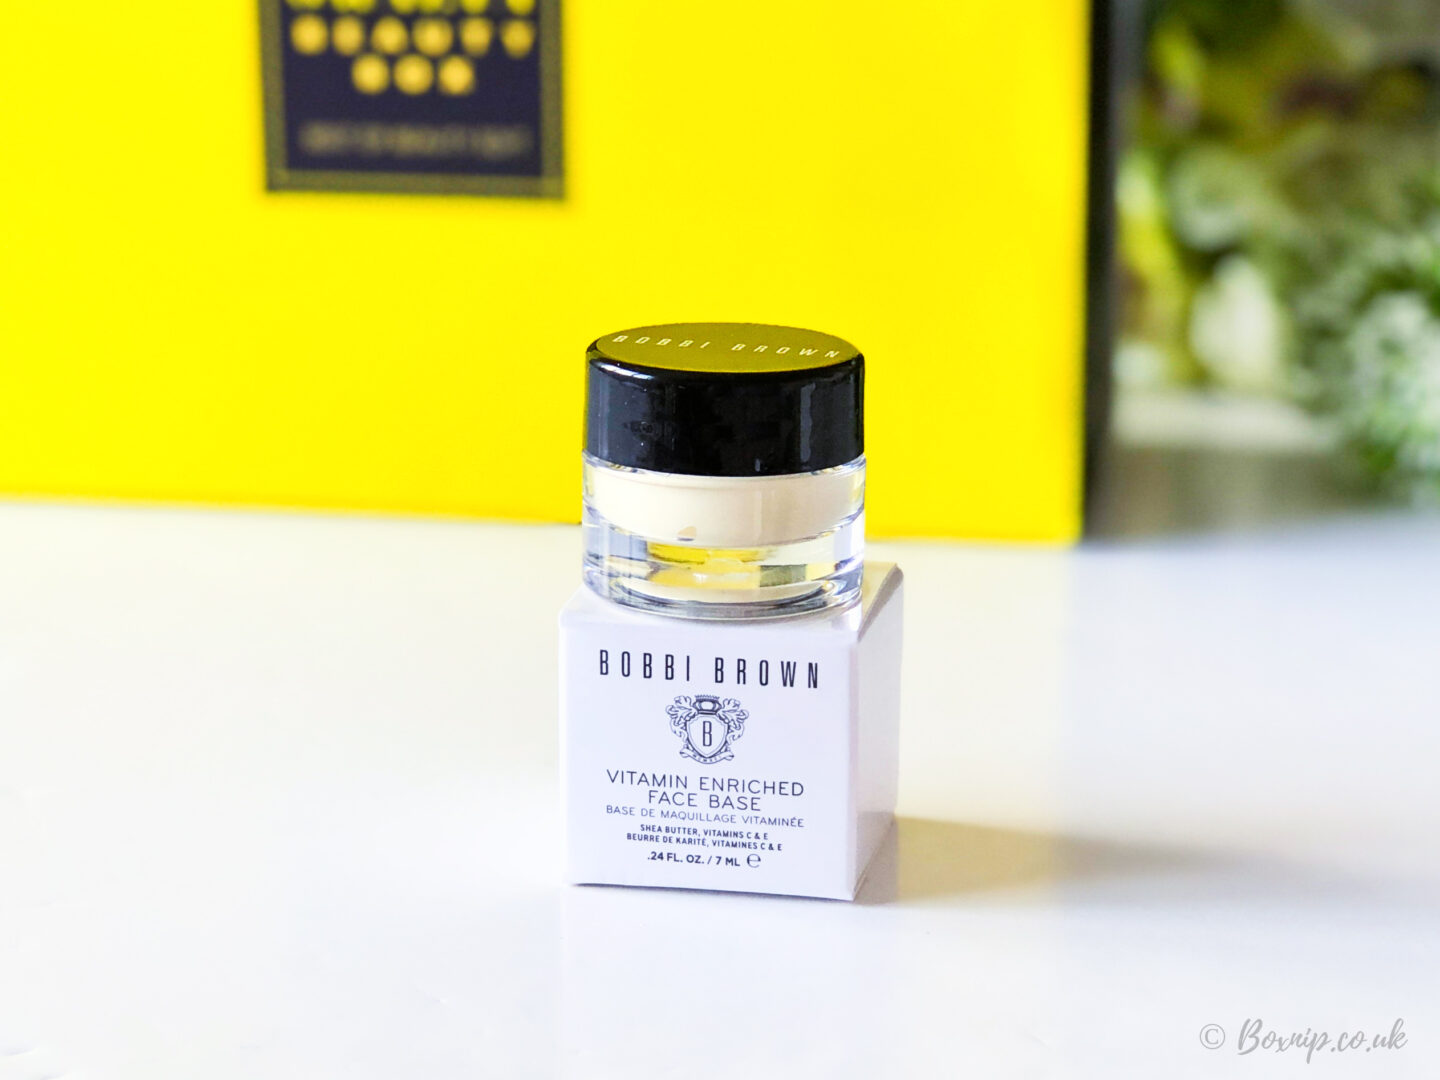 Bobbi Brown - Vitamin Enriched Face Base from the Grazia Best of Beauty Box